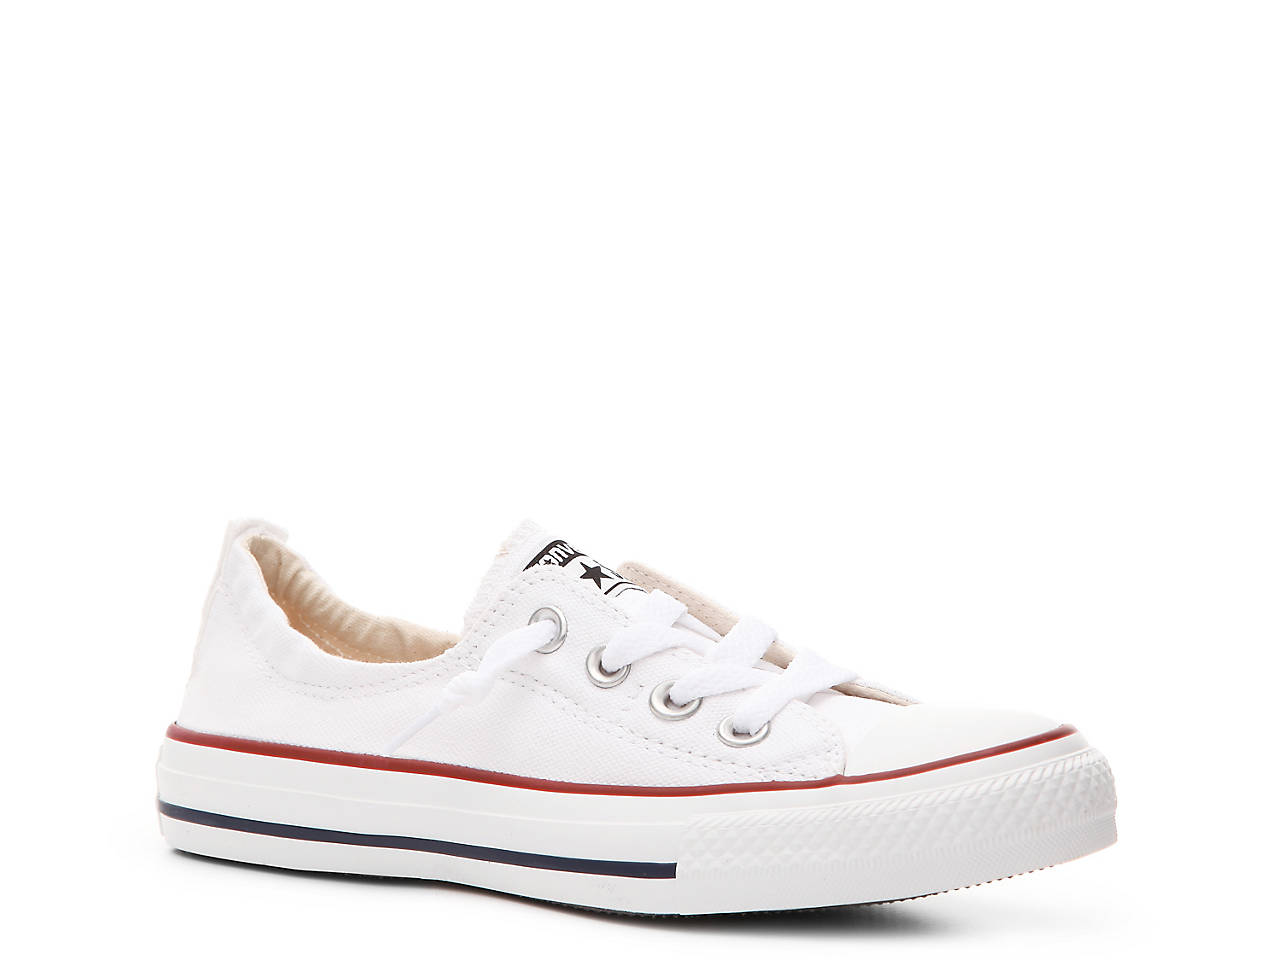 b2fce13a865 Converse Chuck Taylor All Star Shoreline Slip-On Sneaker - Women s ...